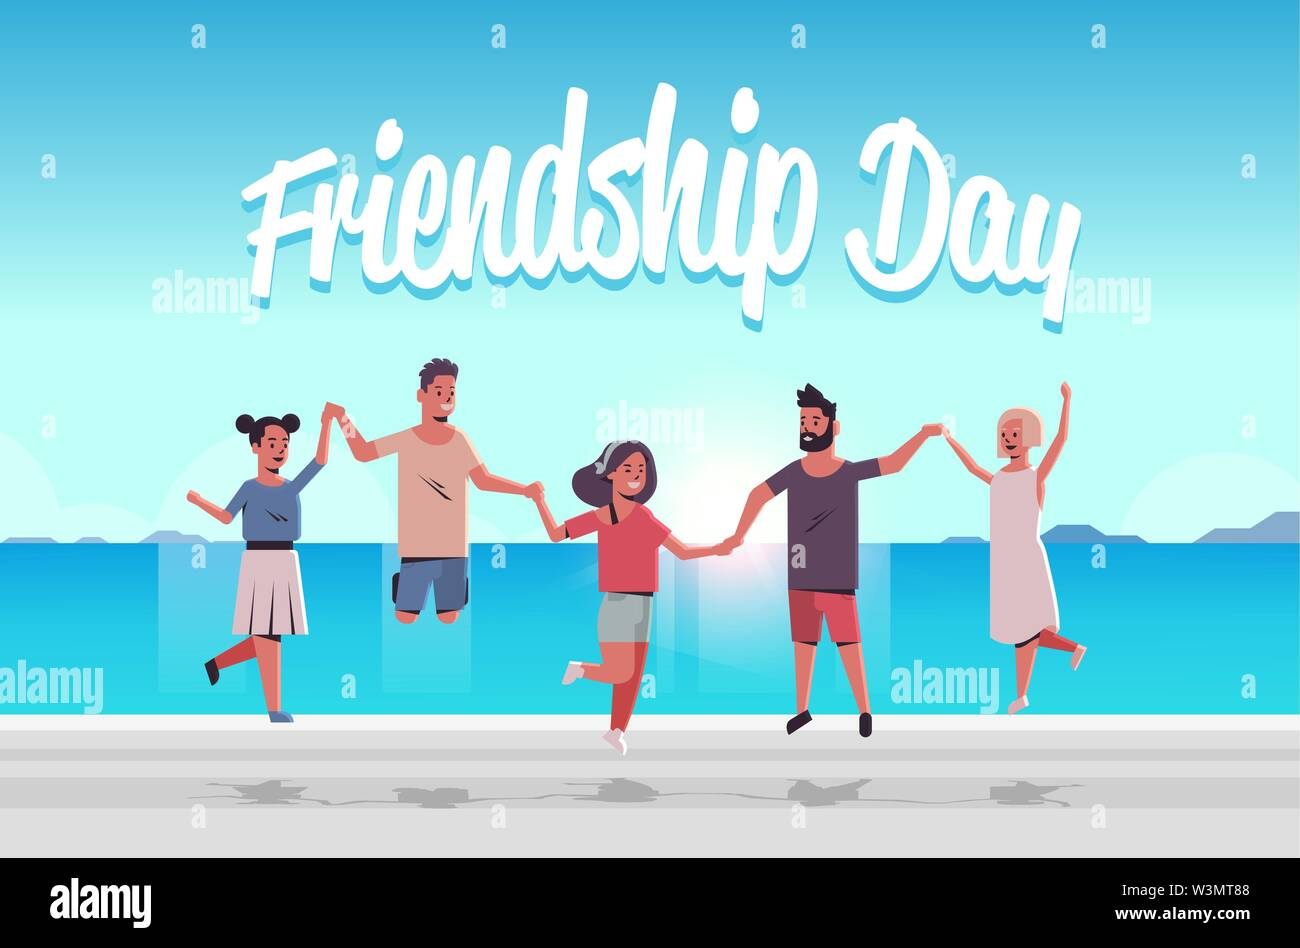 young people group jumping on beach men women holding hands summer vacation friendship day celebration concept friends having fun seaside background f - Stock Image